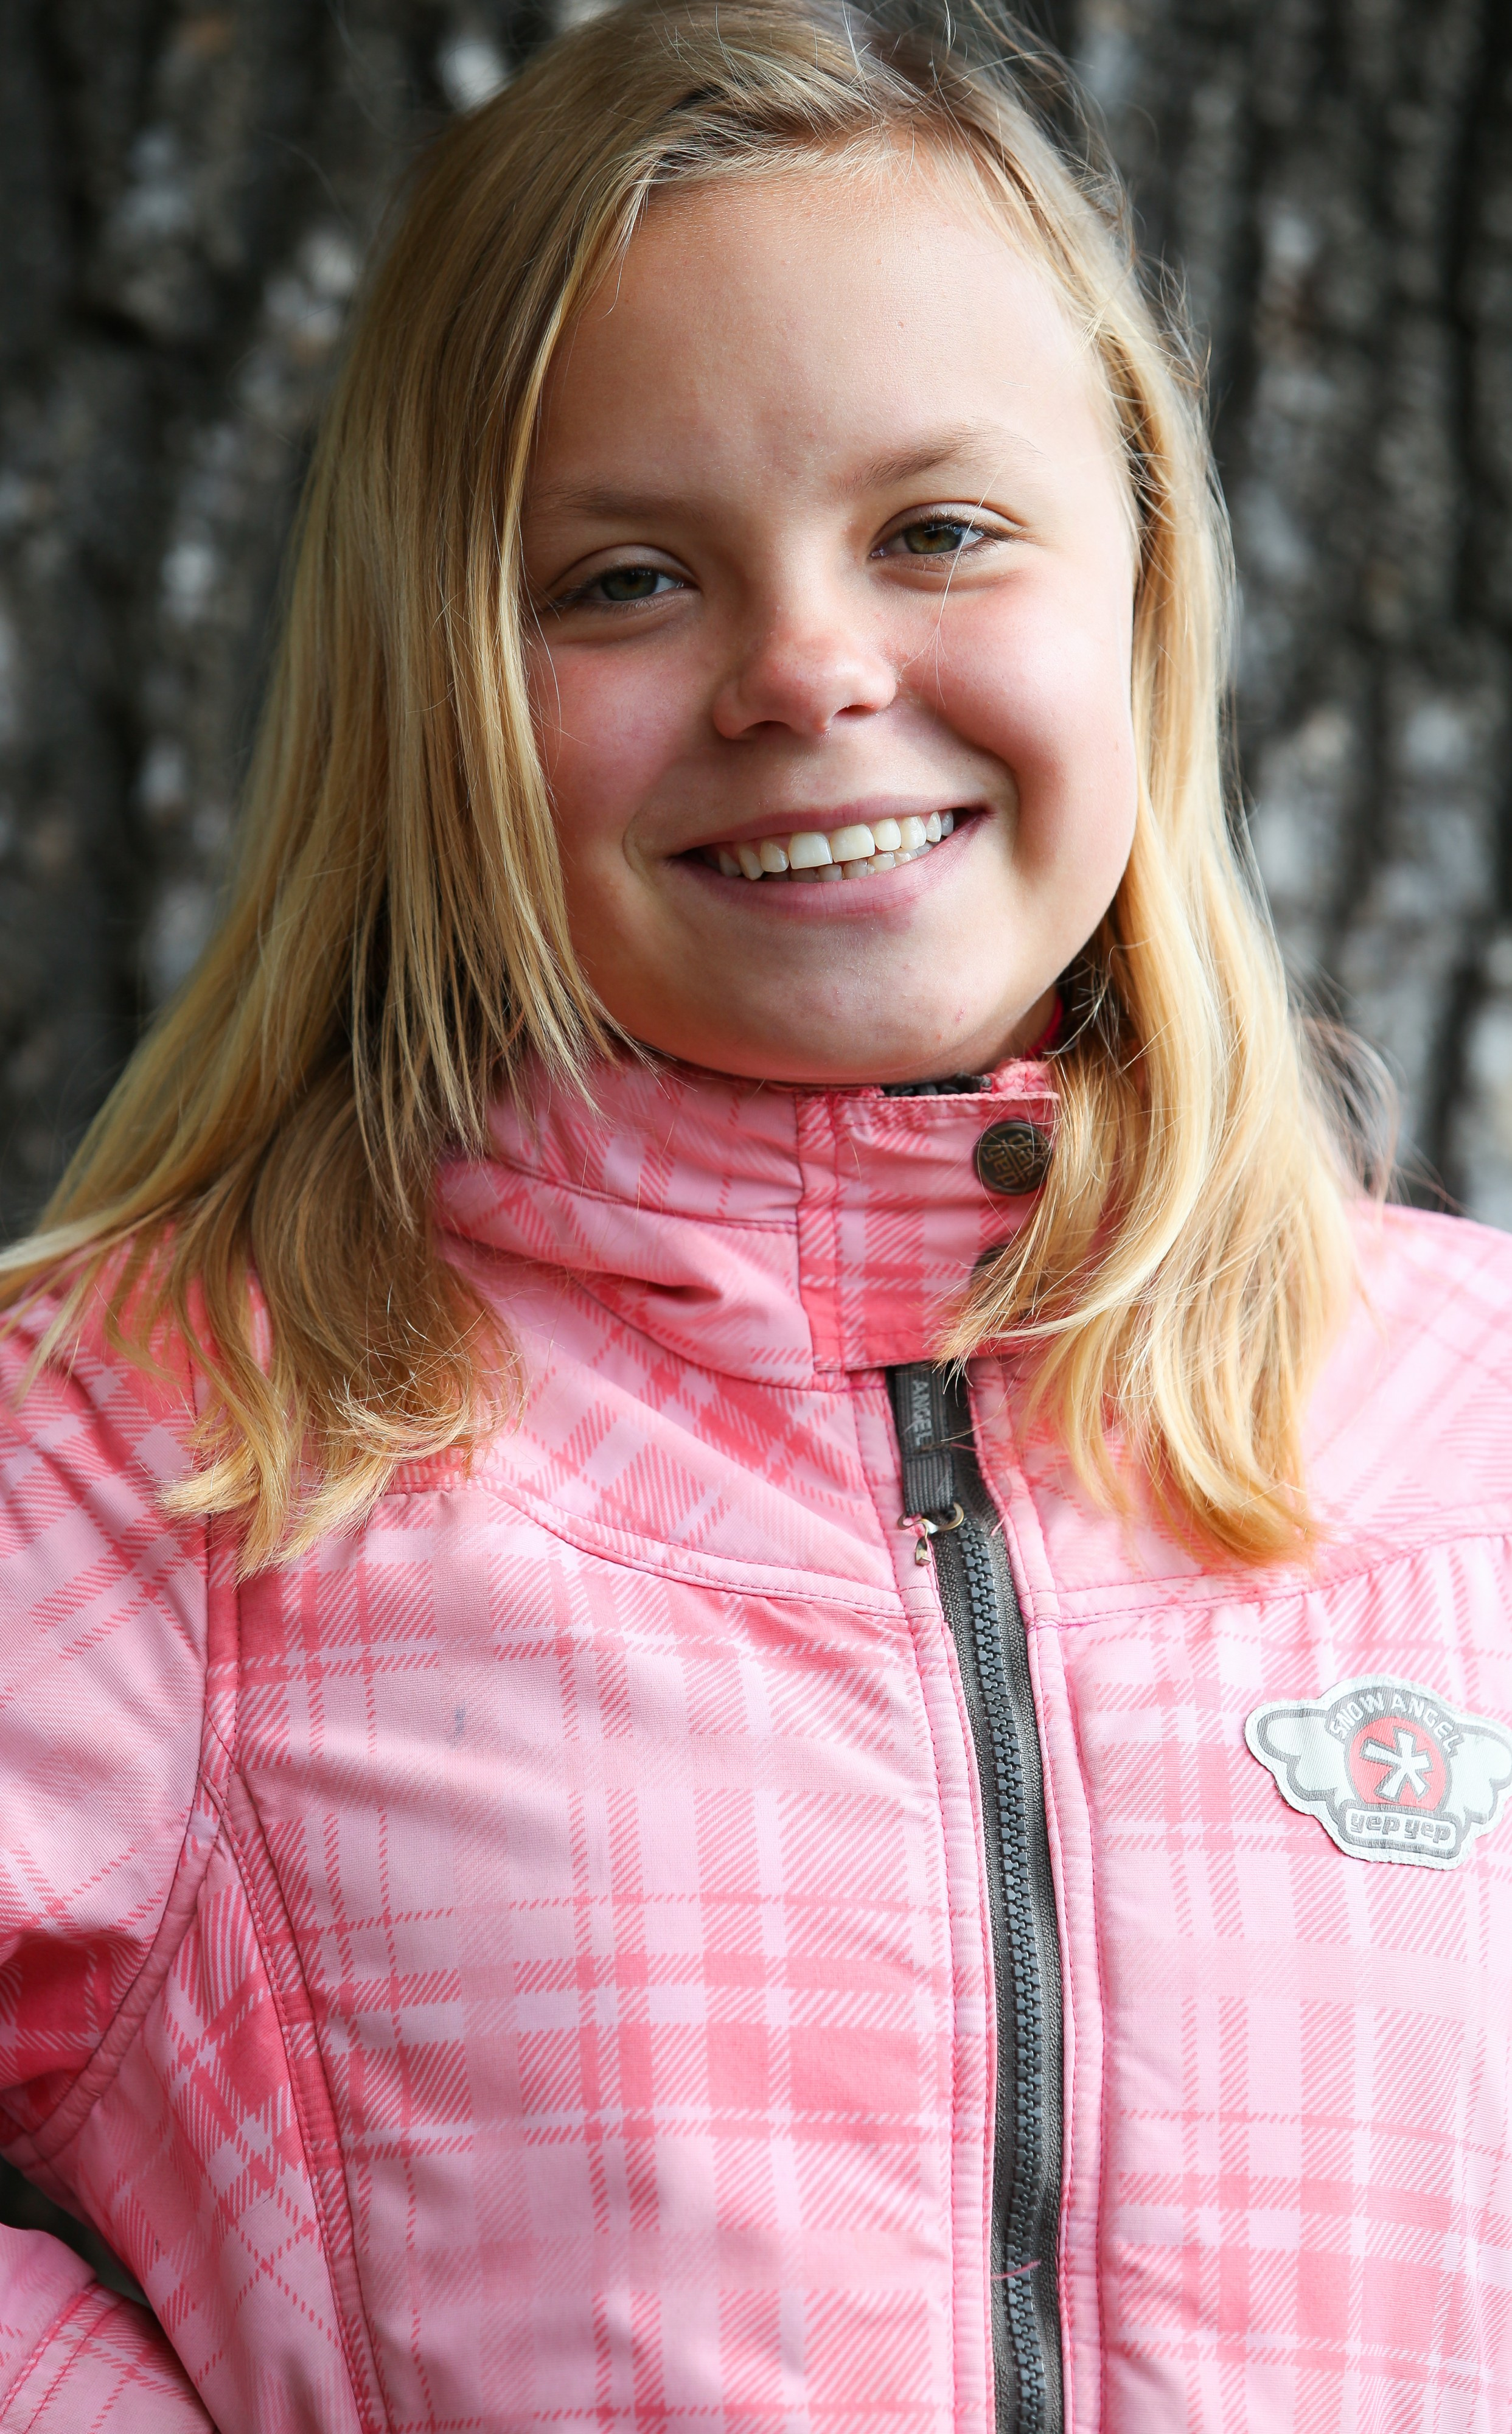 a young smiling blond Catholic girl photographed in September 2013, picture 4/4